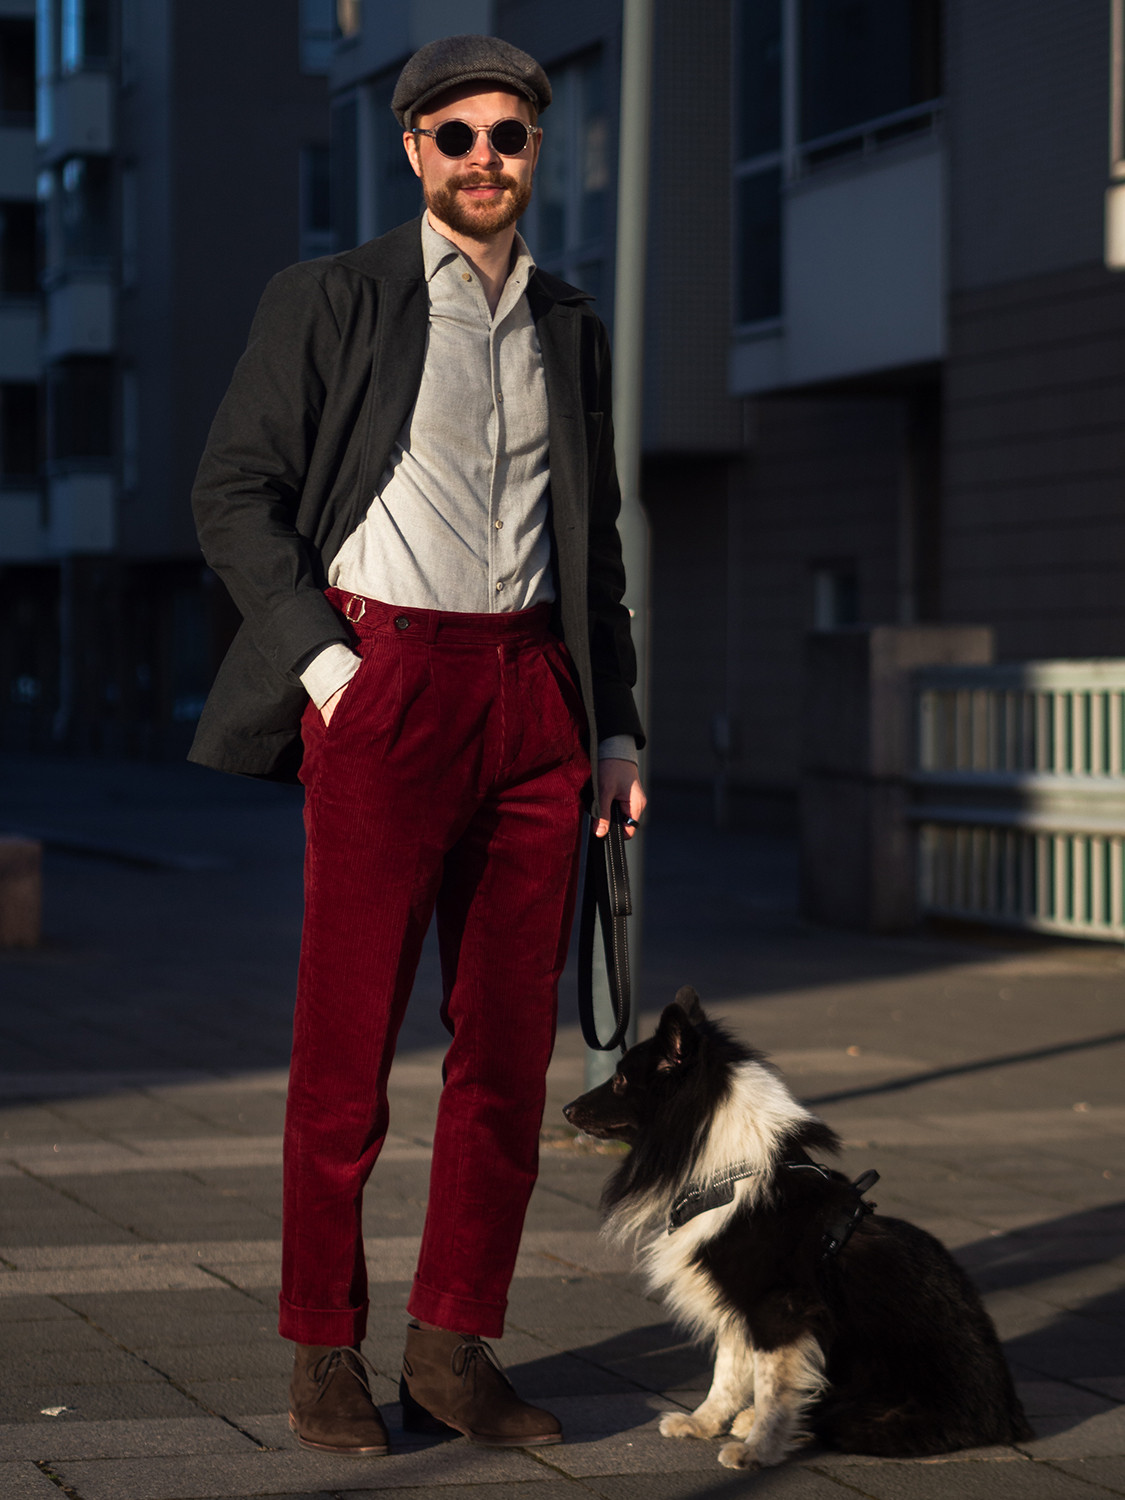 Men's outfit idea for 2021 with grey single-breasted overcoat, grey plain casual shirt, red chinos. Suitable for spring, autumn and winter.